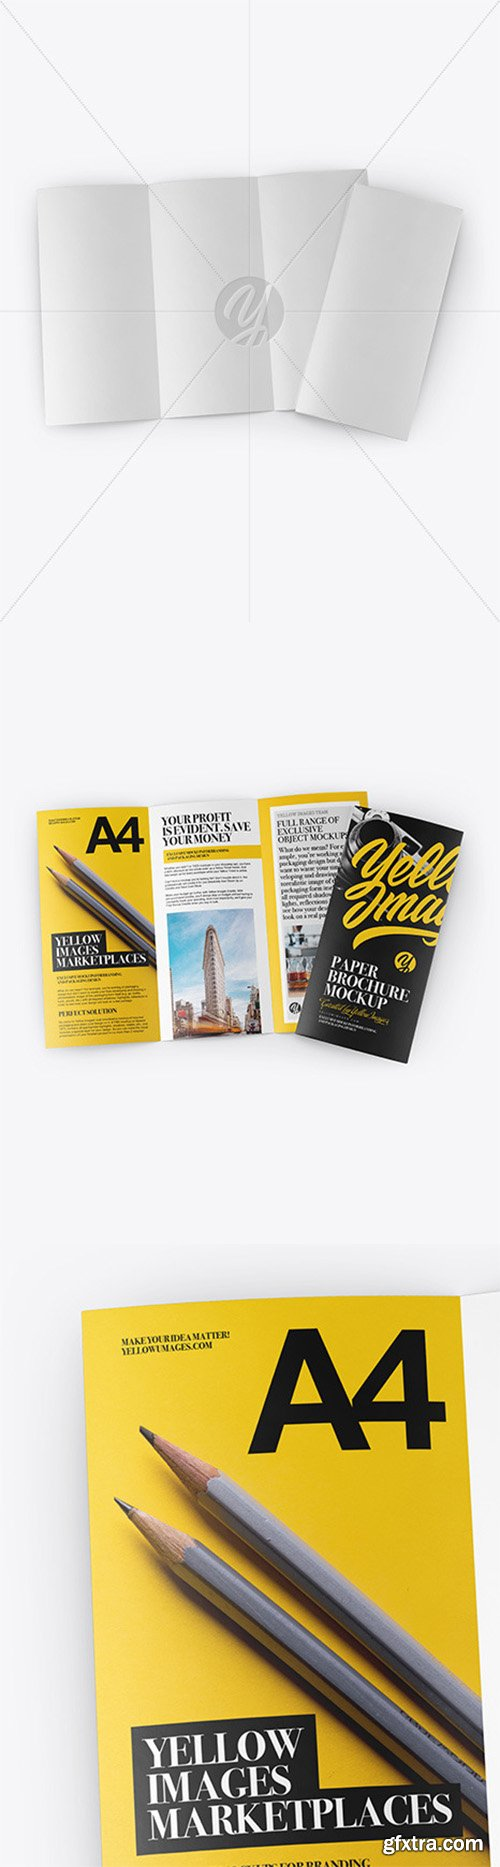 Download A4 Size Flyer Mockup Free Download Yellowimages